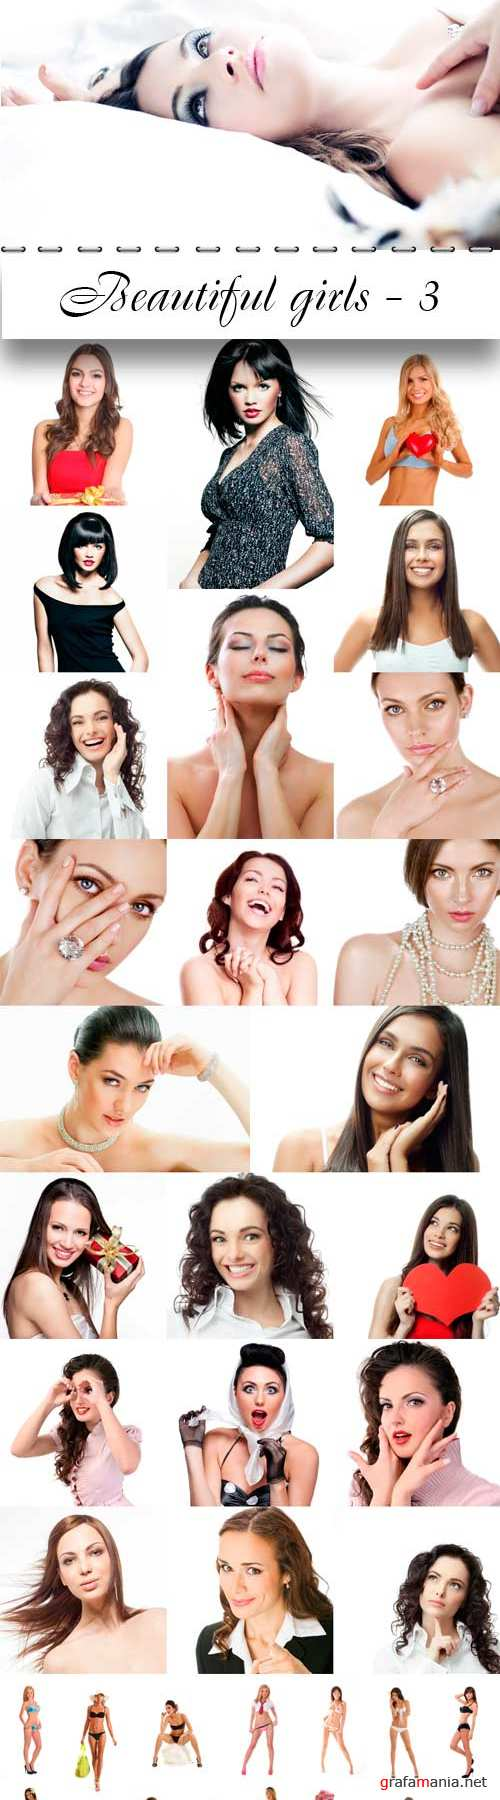 Beautiful girls collection - 3. Ladies on a white background